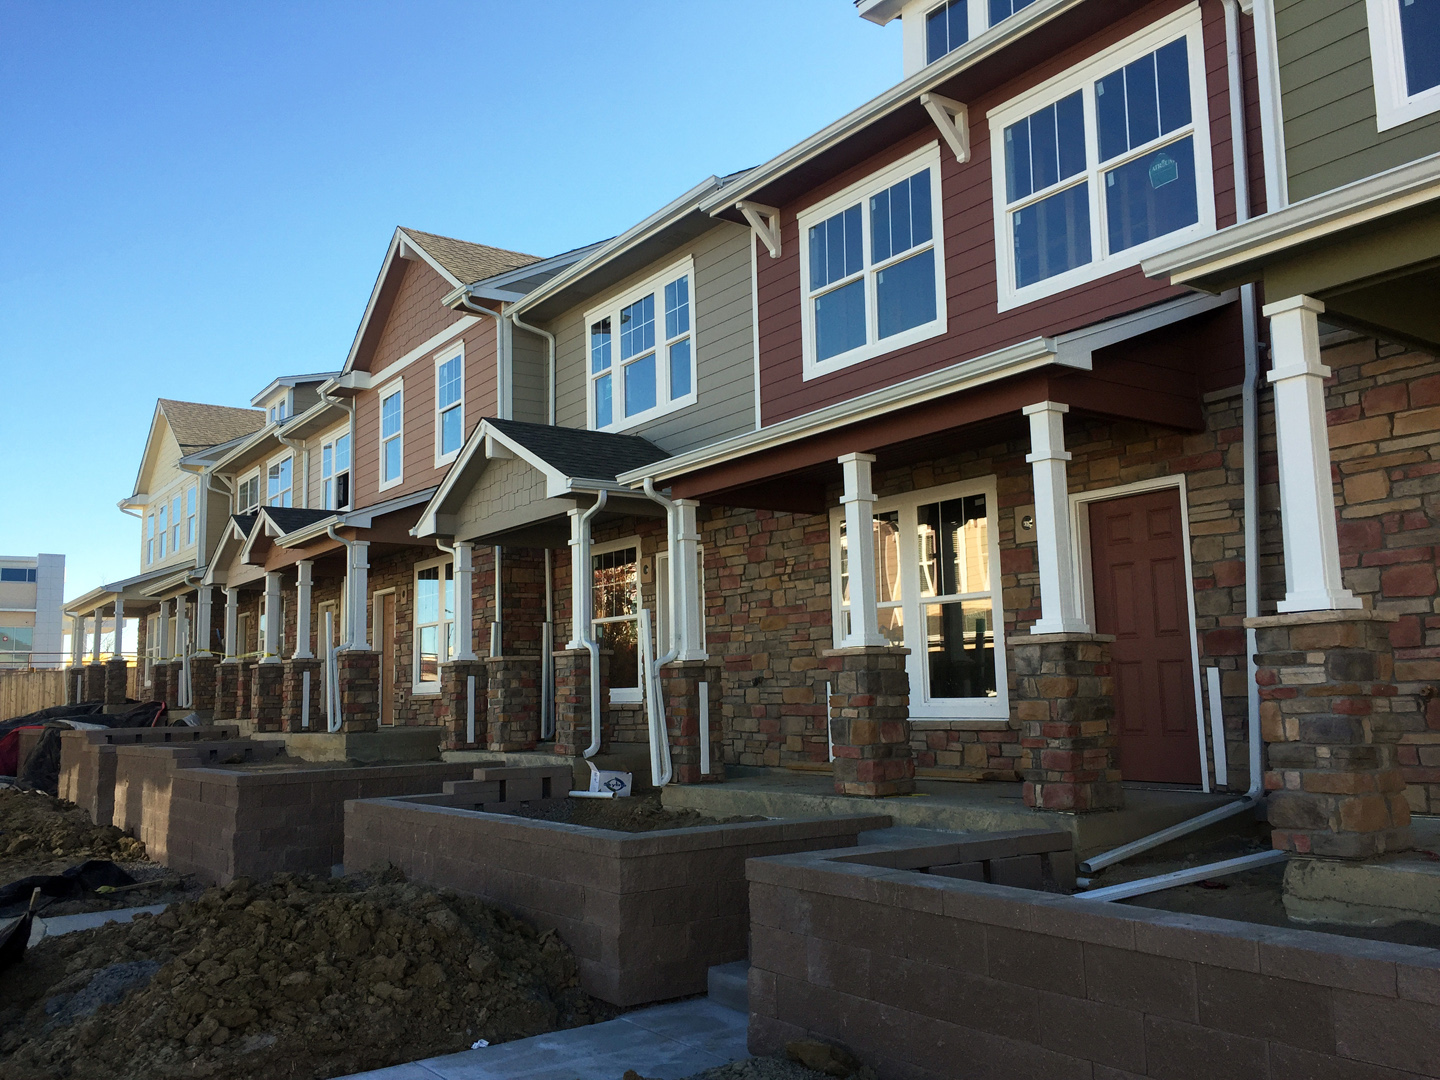 CHERRYWOOD PARK TOWNHOMES